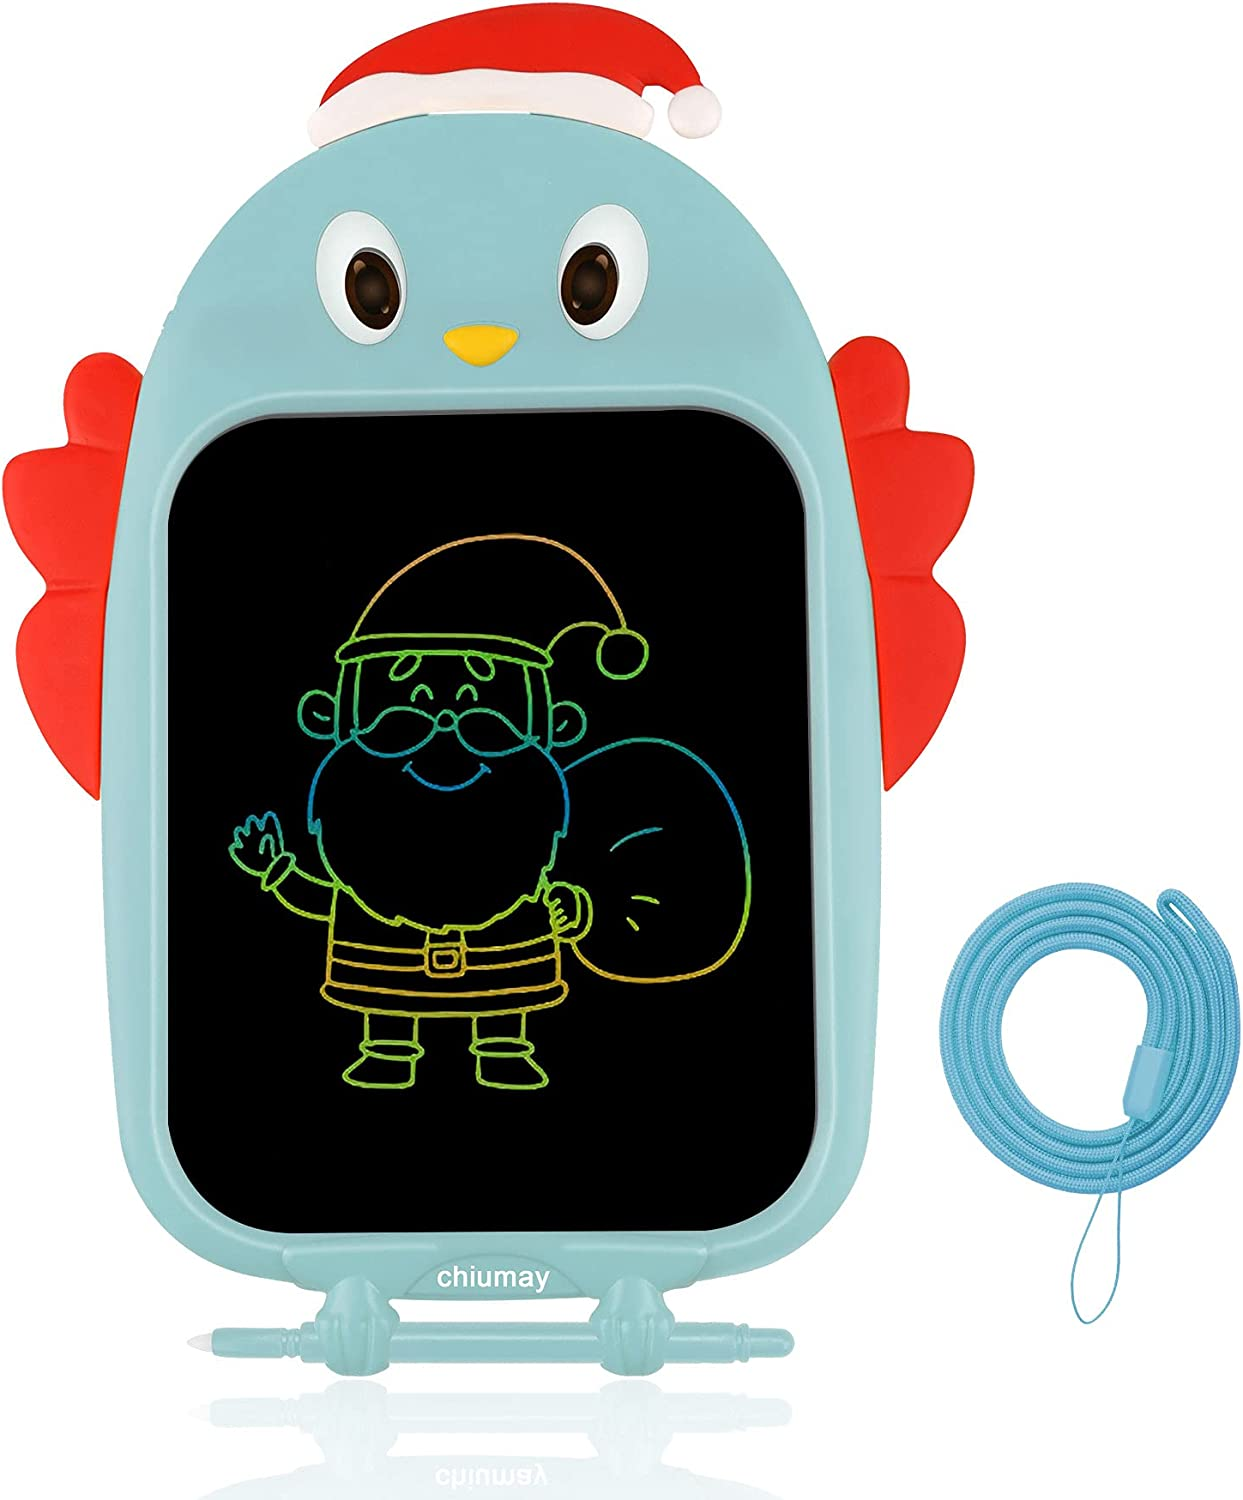 LCD Max 83% OFF Writing Tablet for Kids chiumay Inches Board Doo Drawing New product!! 8.5